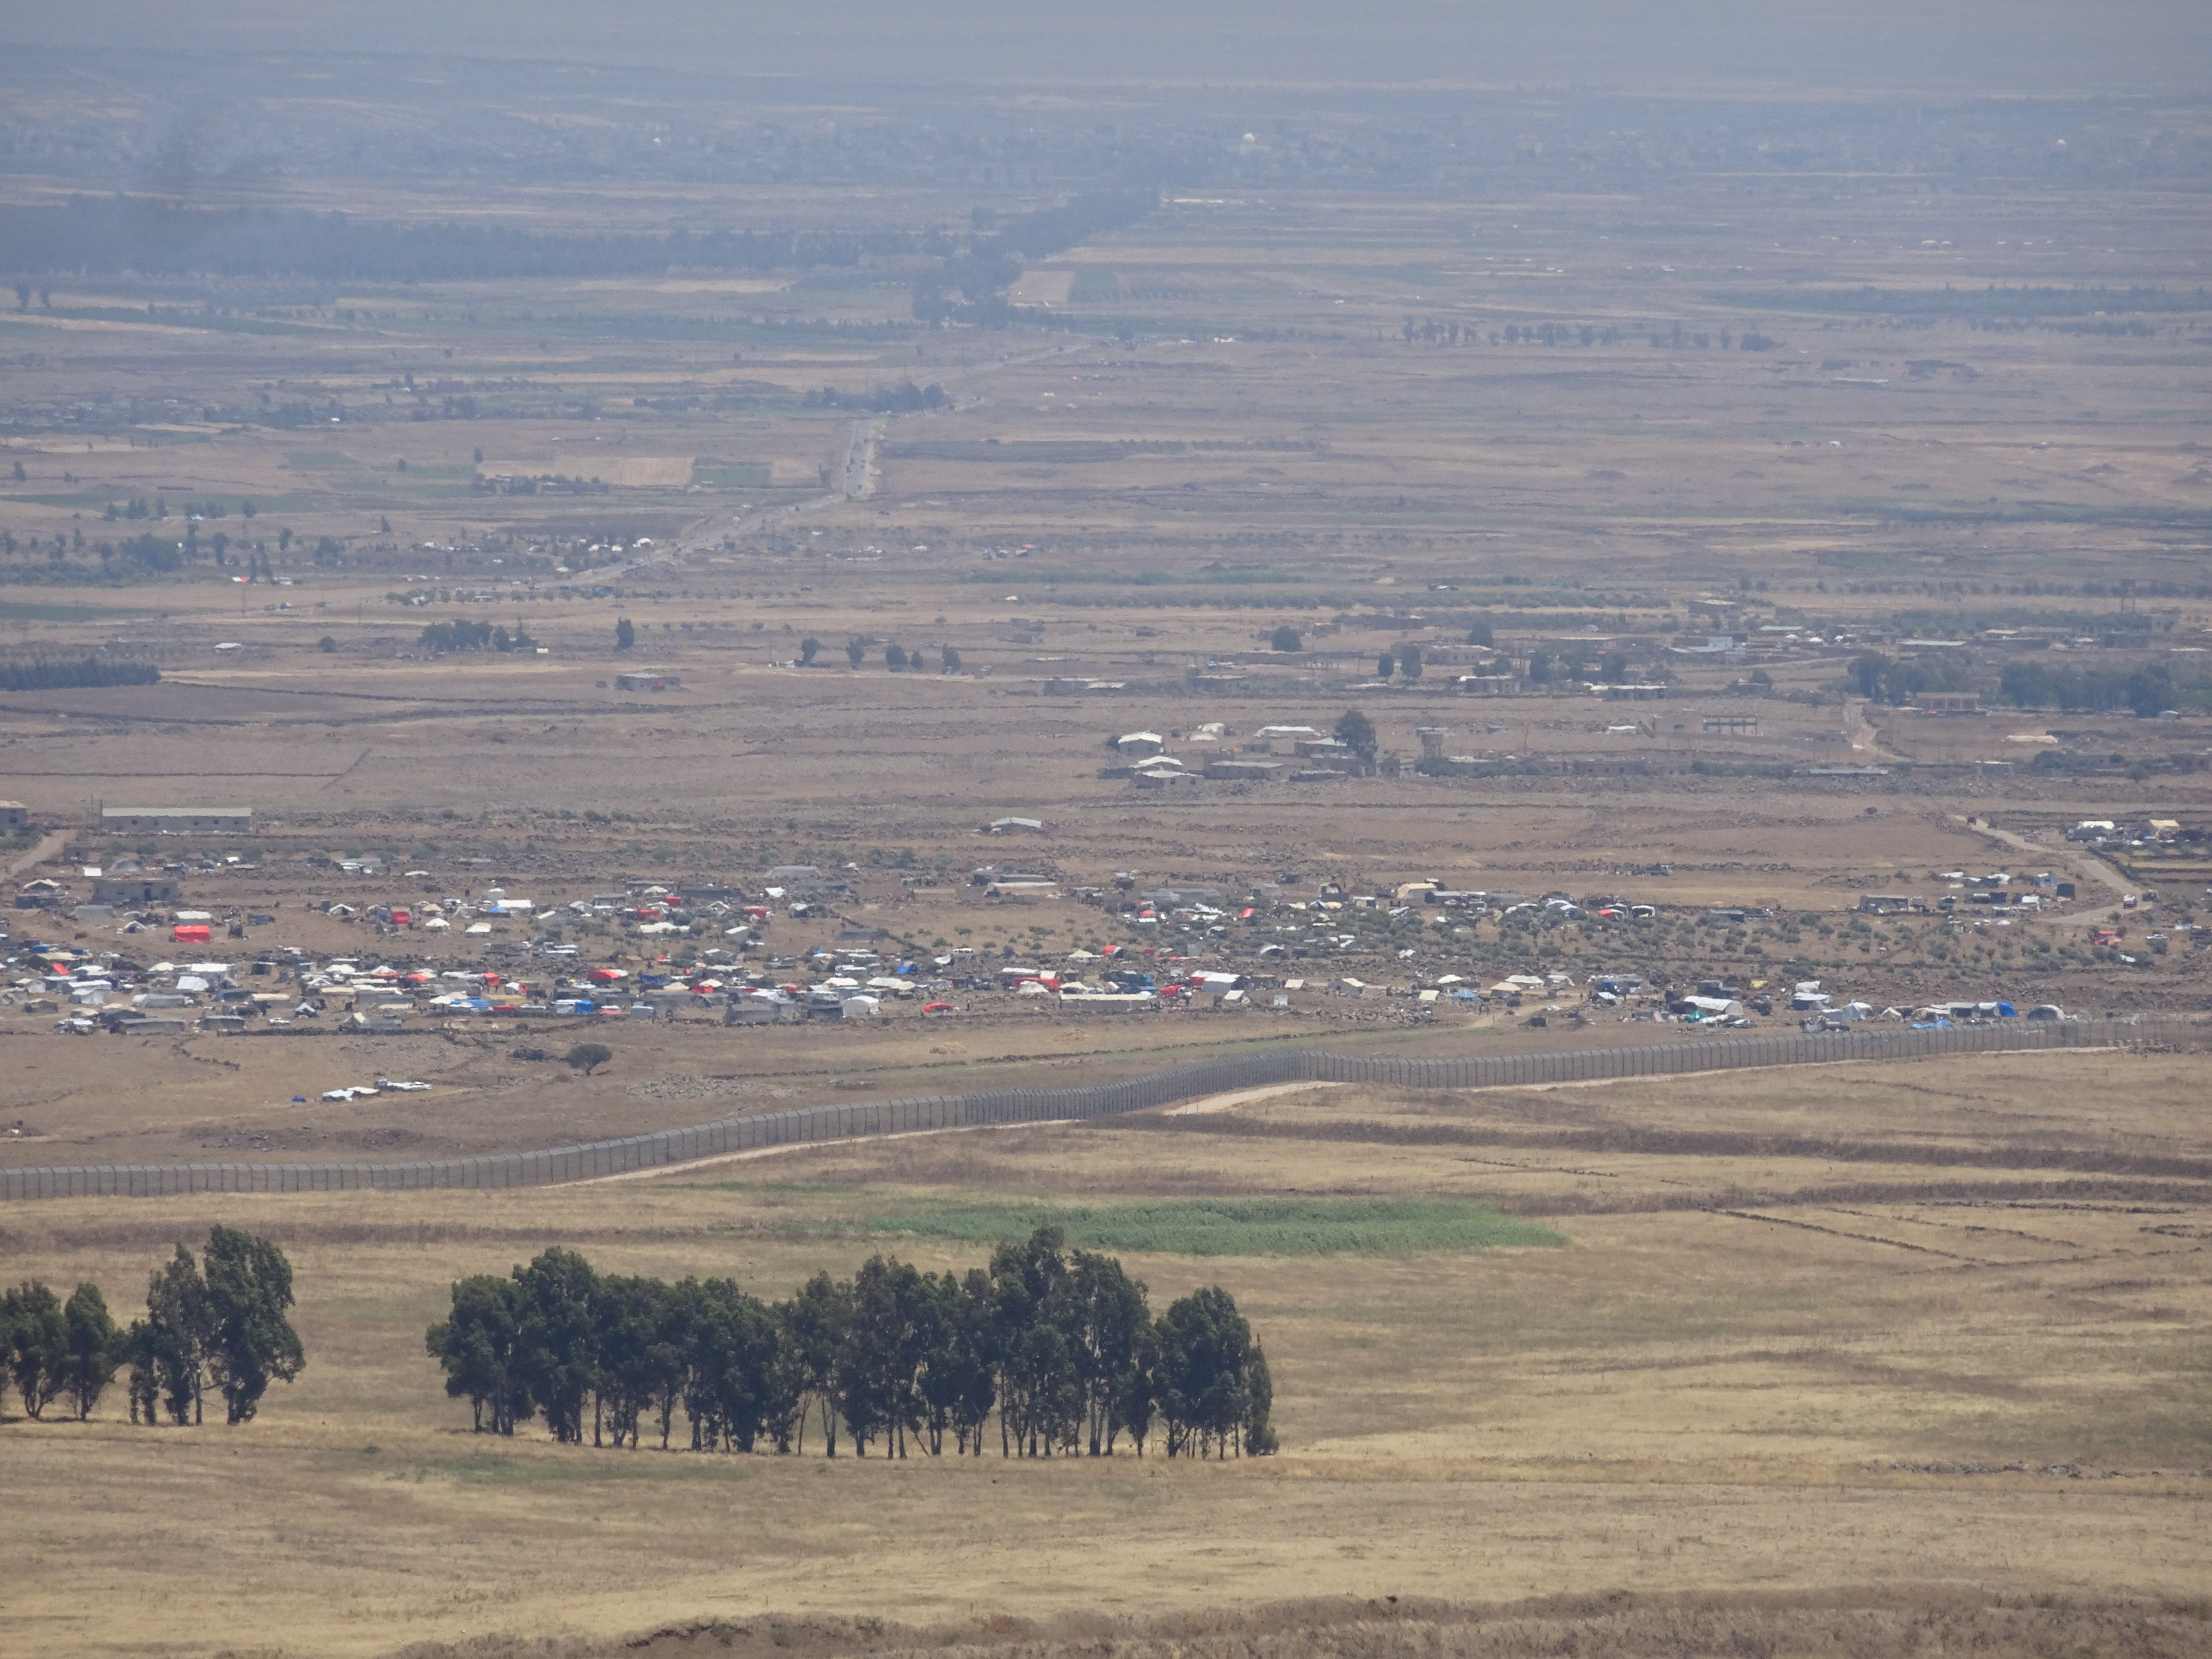 A view from Mount Peres on the Syria border with the Golan Heights showing Syrian IDPs crowded near Al-Rafid on the ceasefire line, June 30, 2018 (Seth J. Frantzman)